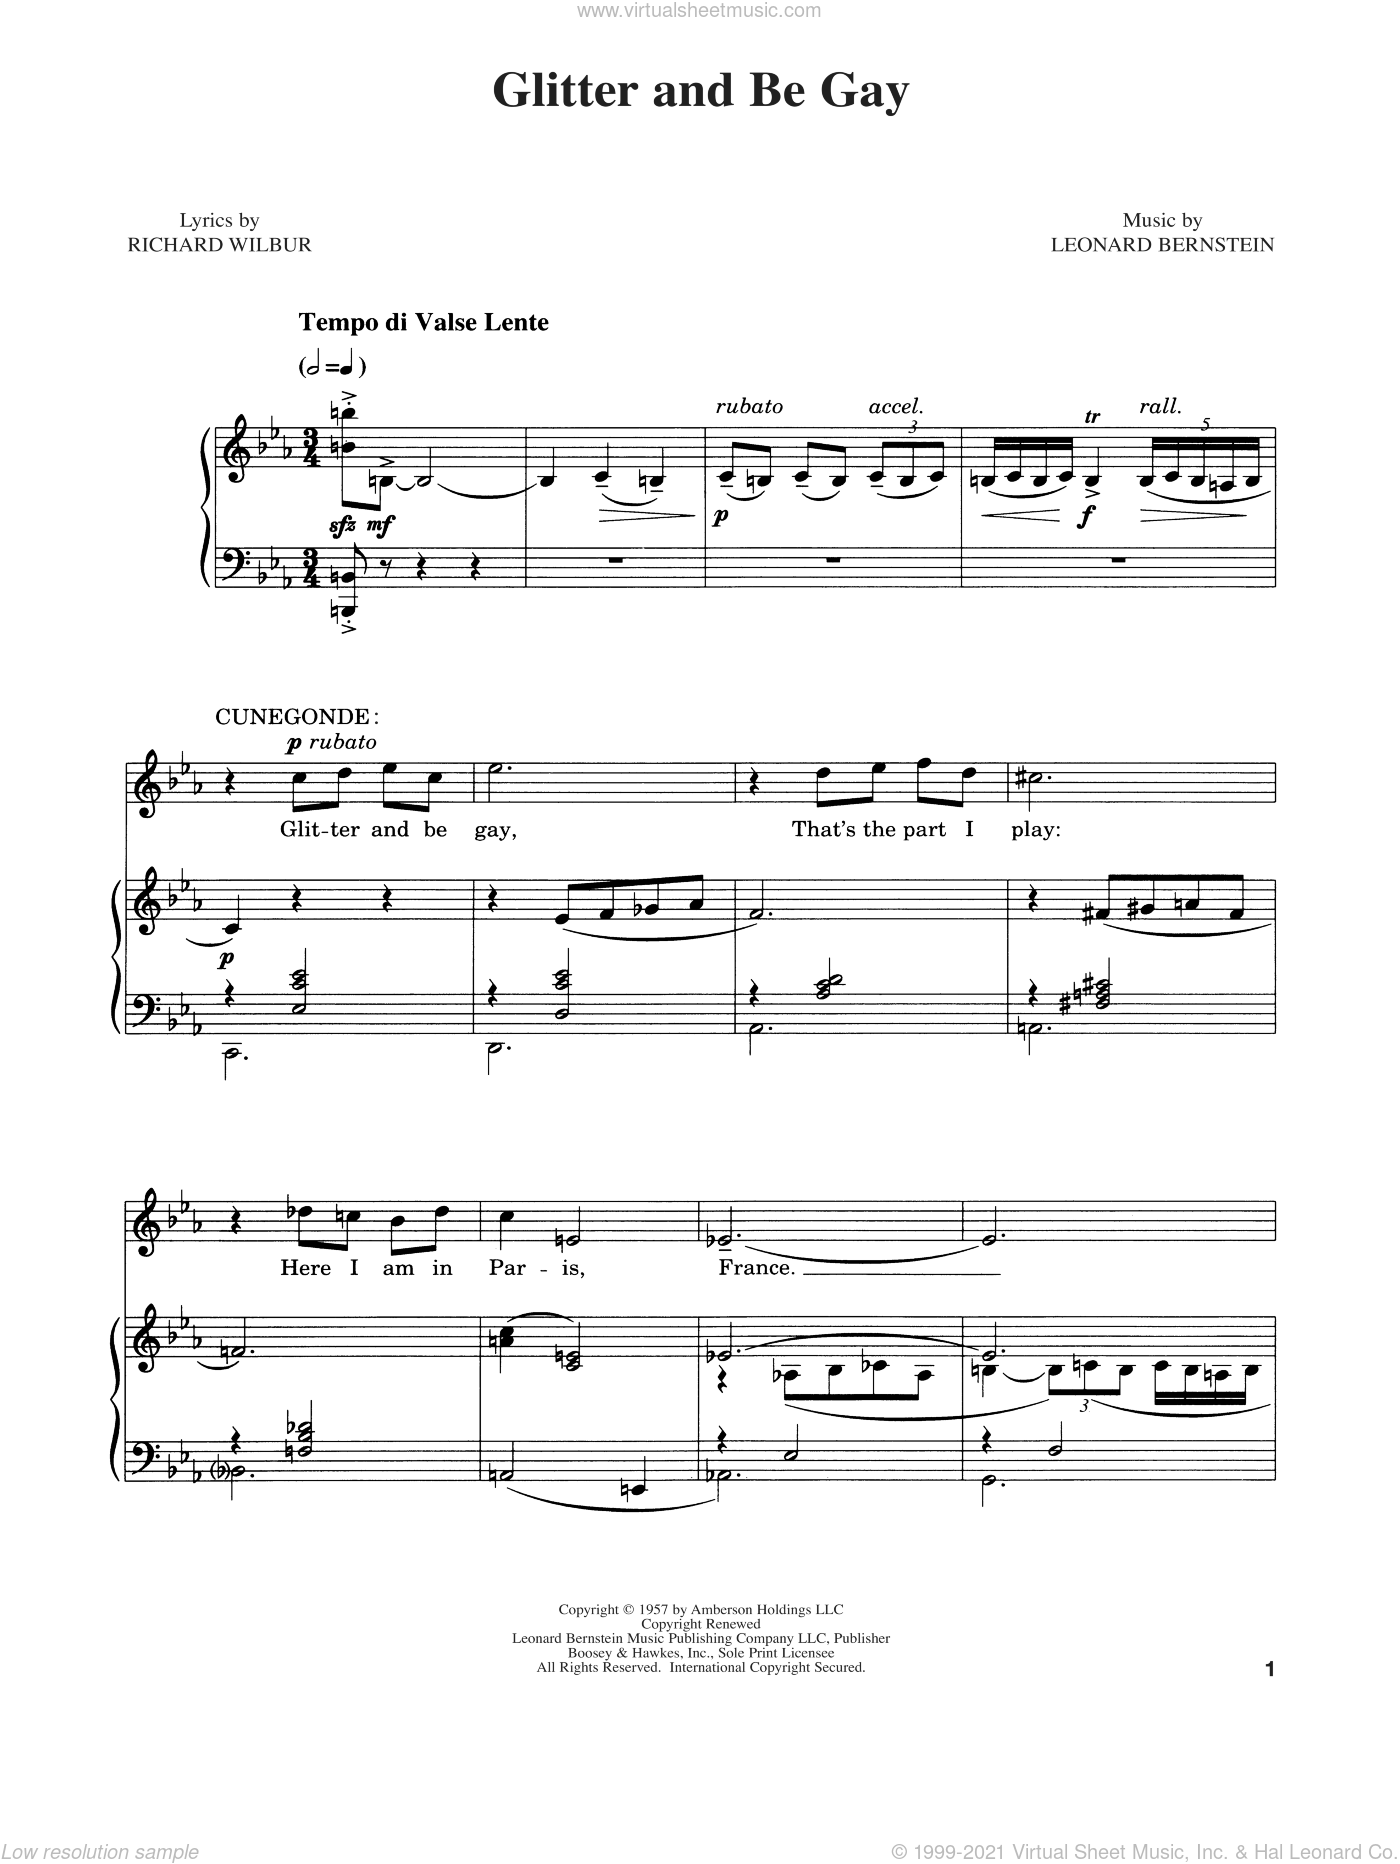 Glitter And Be Gay sheet music for voice and piano by Richard Wilbur